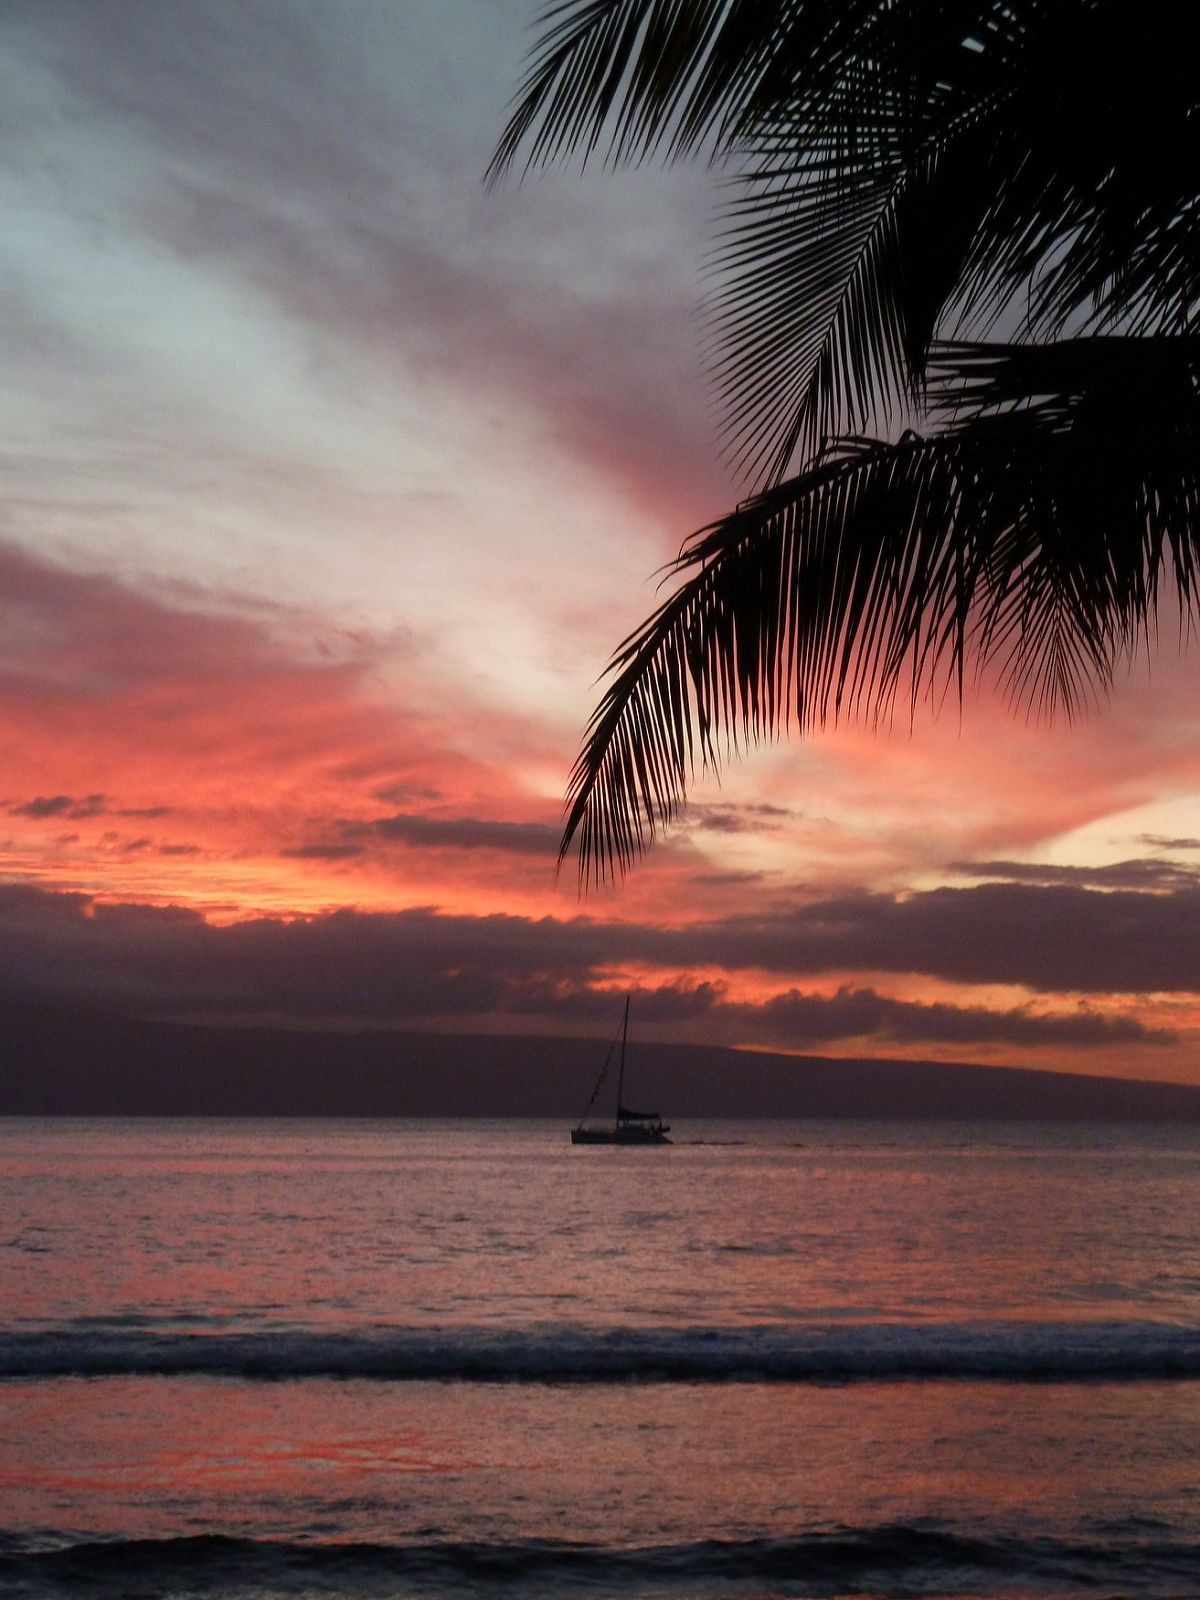 Lake tahoe sunset travel channel pinterest - Explore Maui Sunsets And More